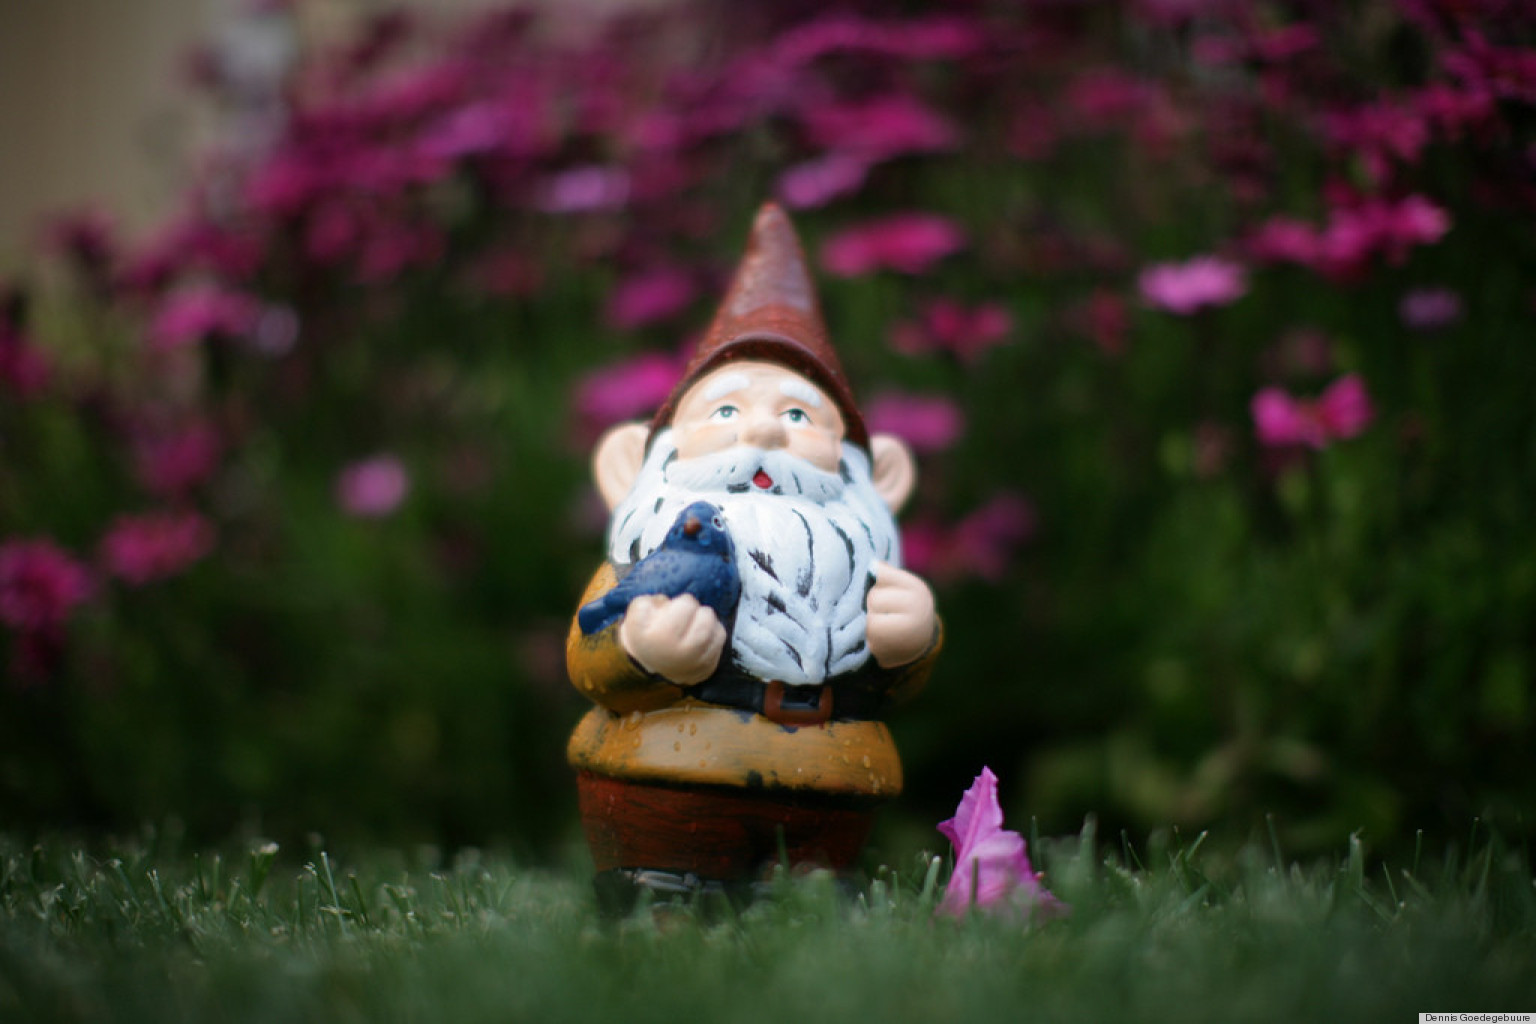 Gnome Garden: 10 Adorable Garden Gnomes That Are Protecting Yards All